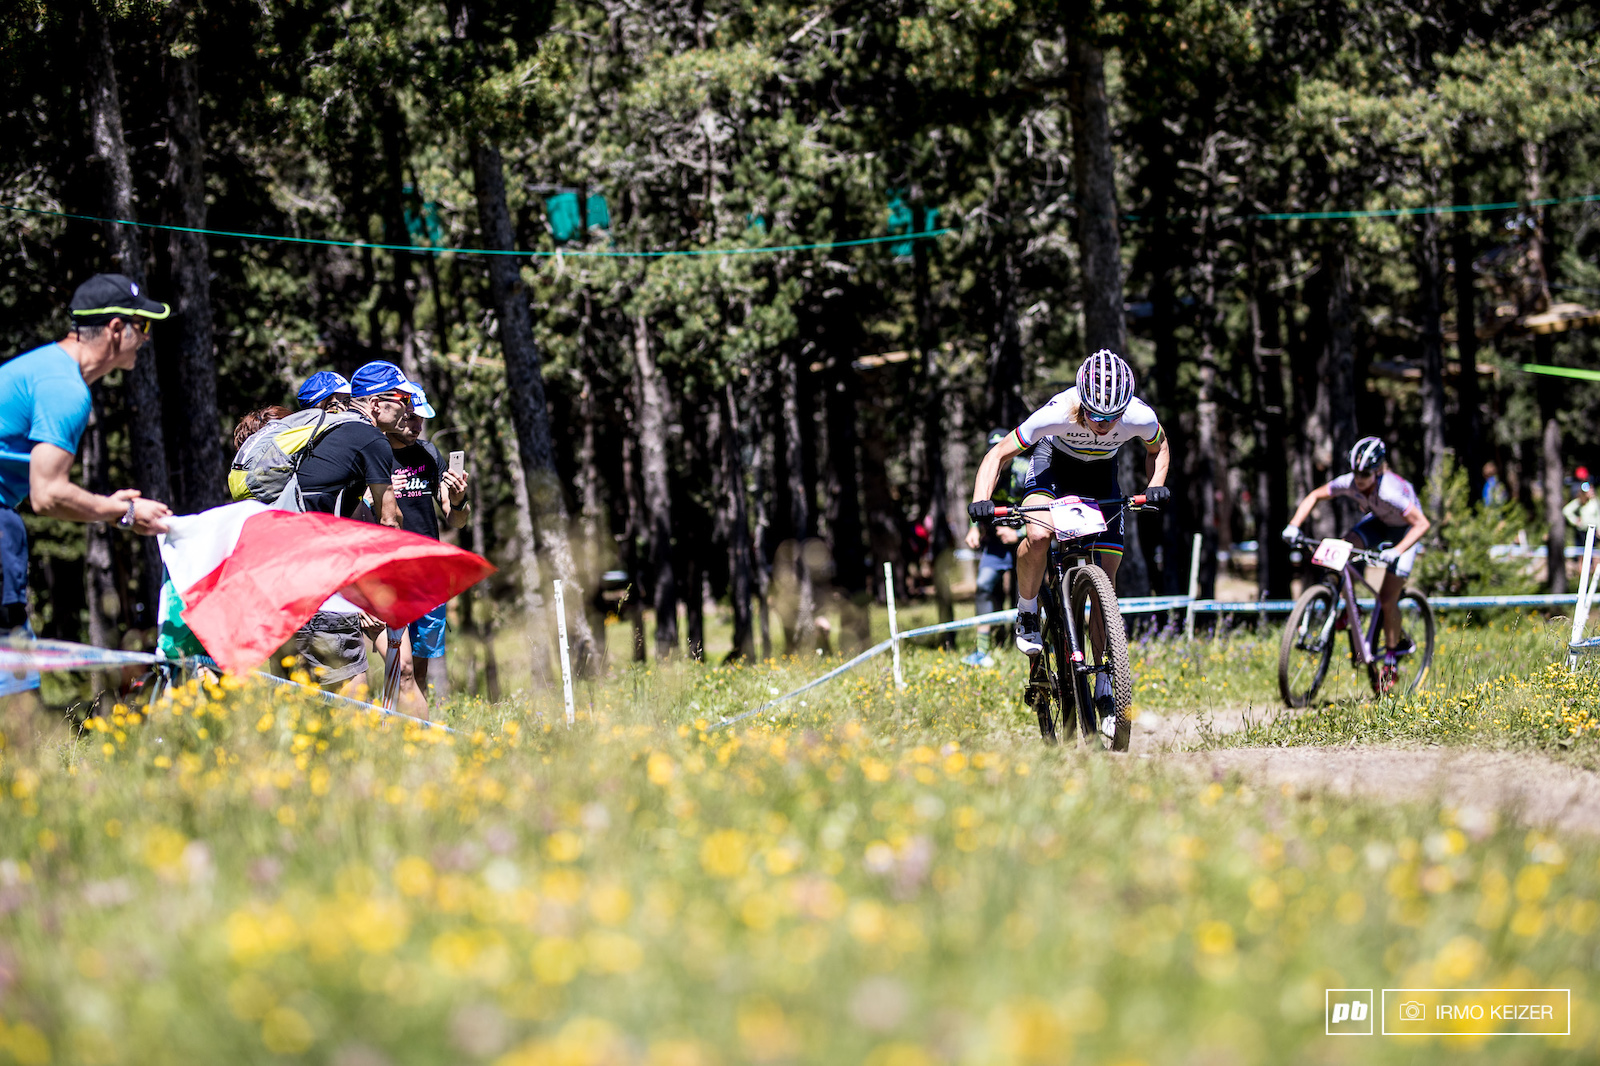 Langvad pushed hard and managed to pull away from Dahle-Fjesjaa riding to a second place.